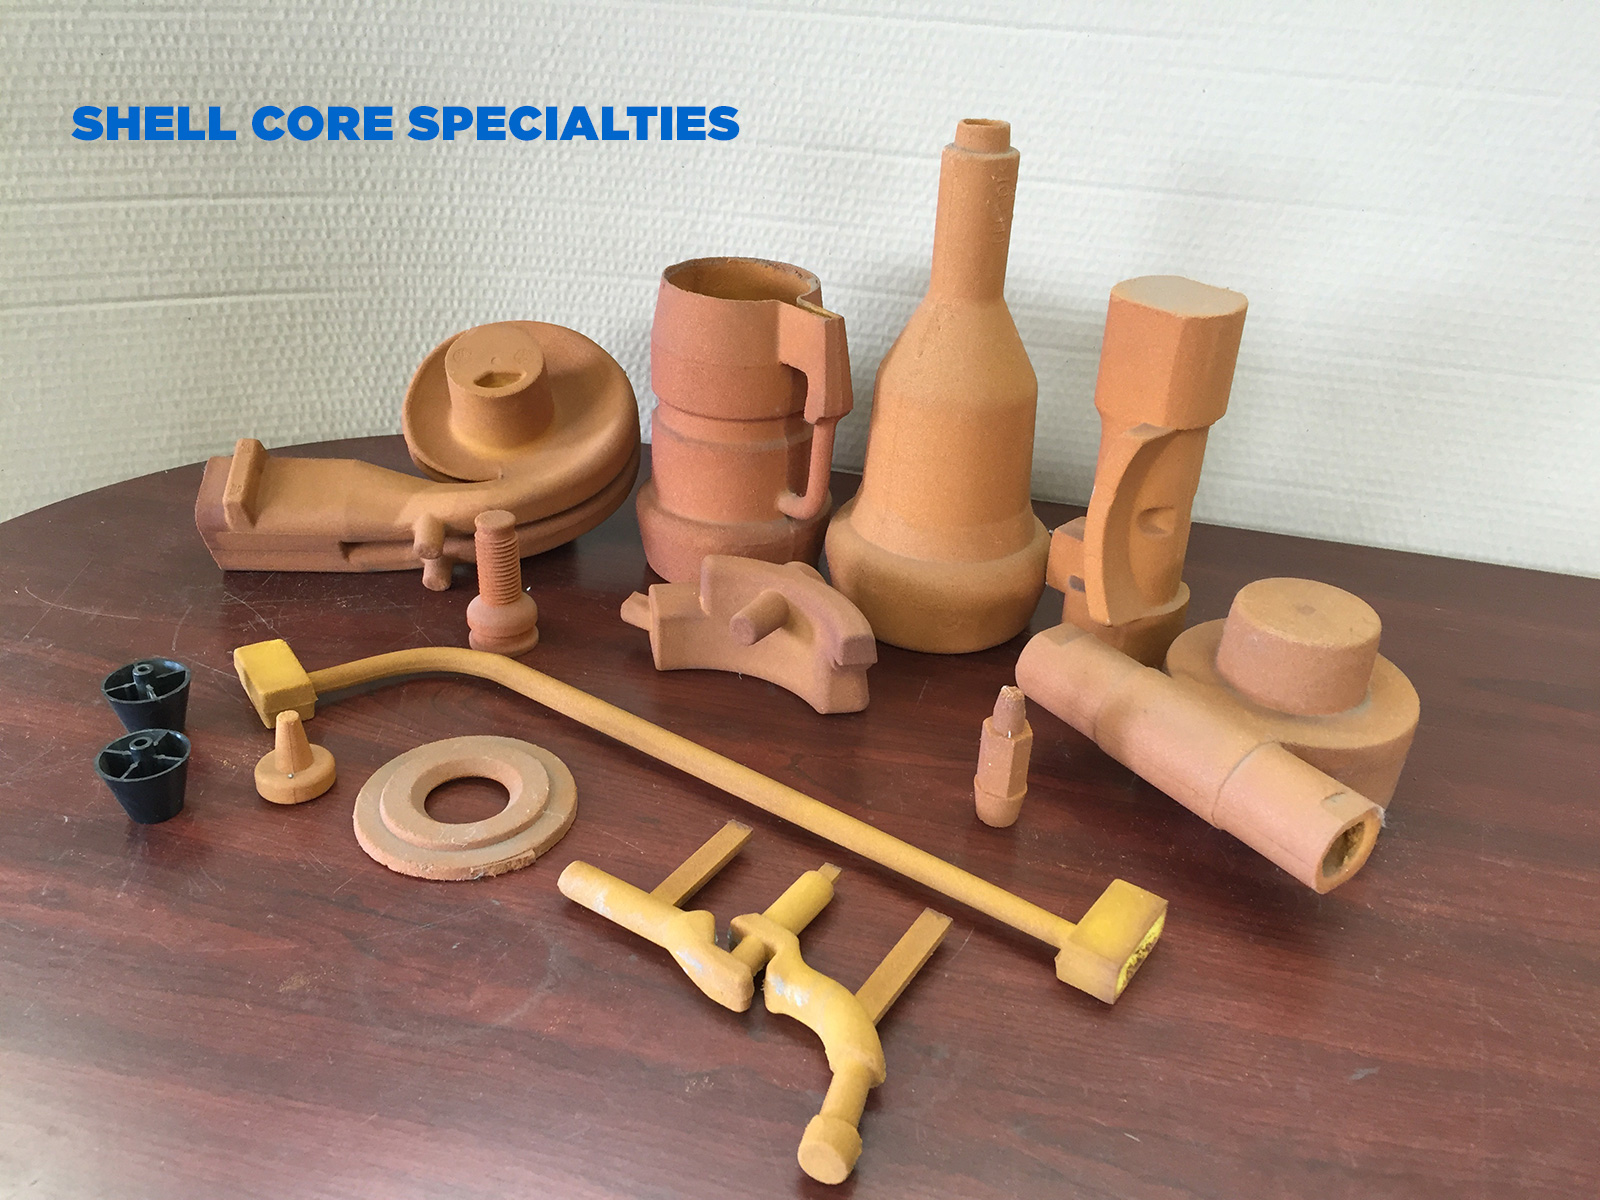 Shell Cores Specialties